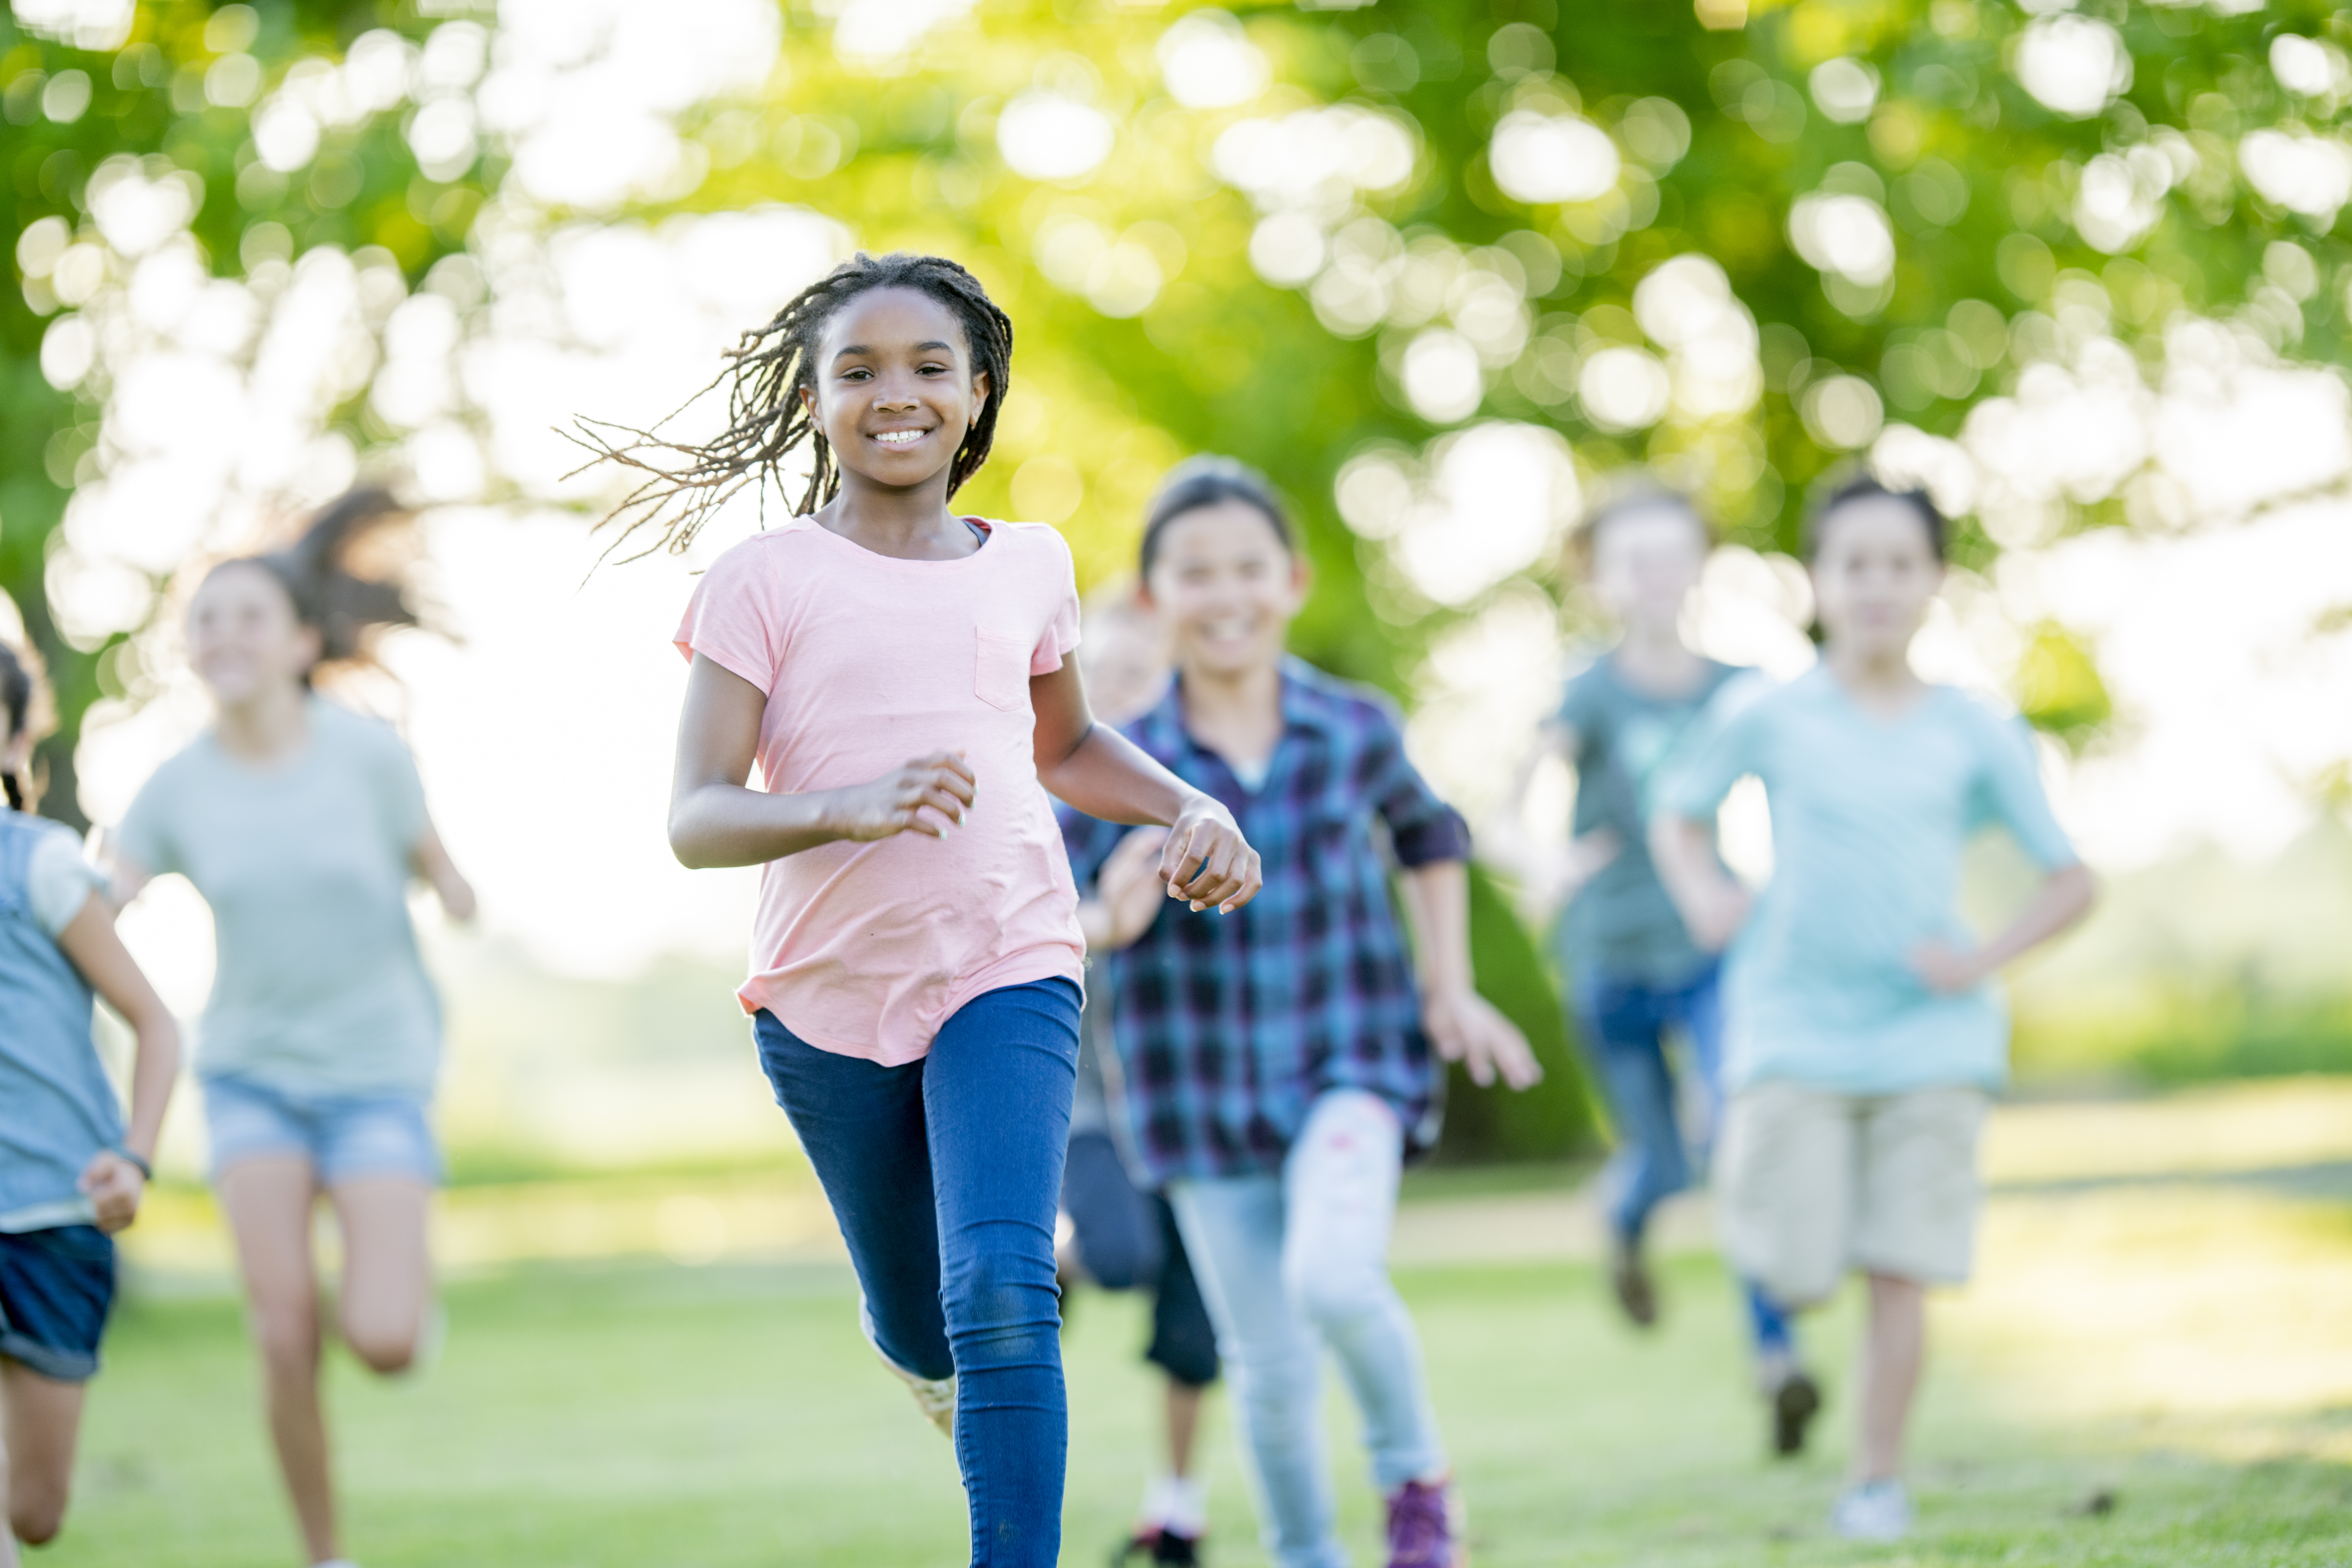 African American girl smiling while running through the park with her friends